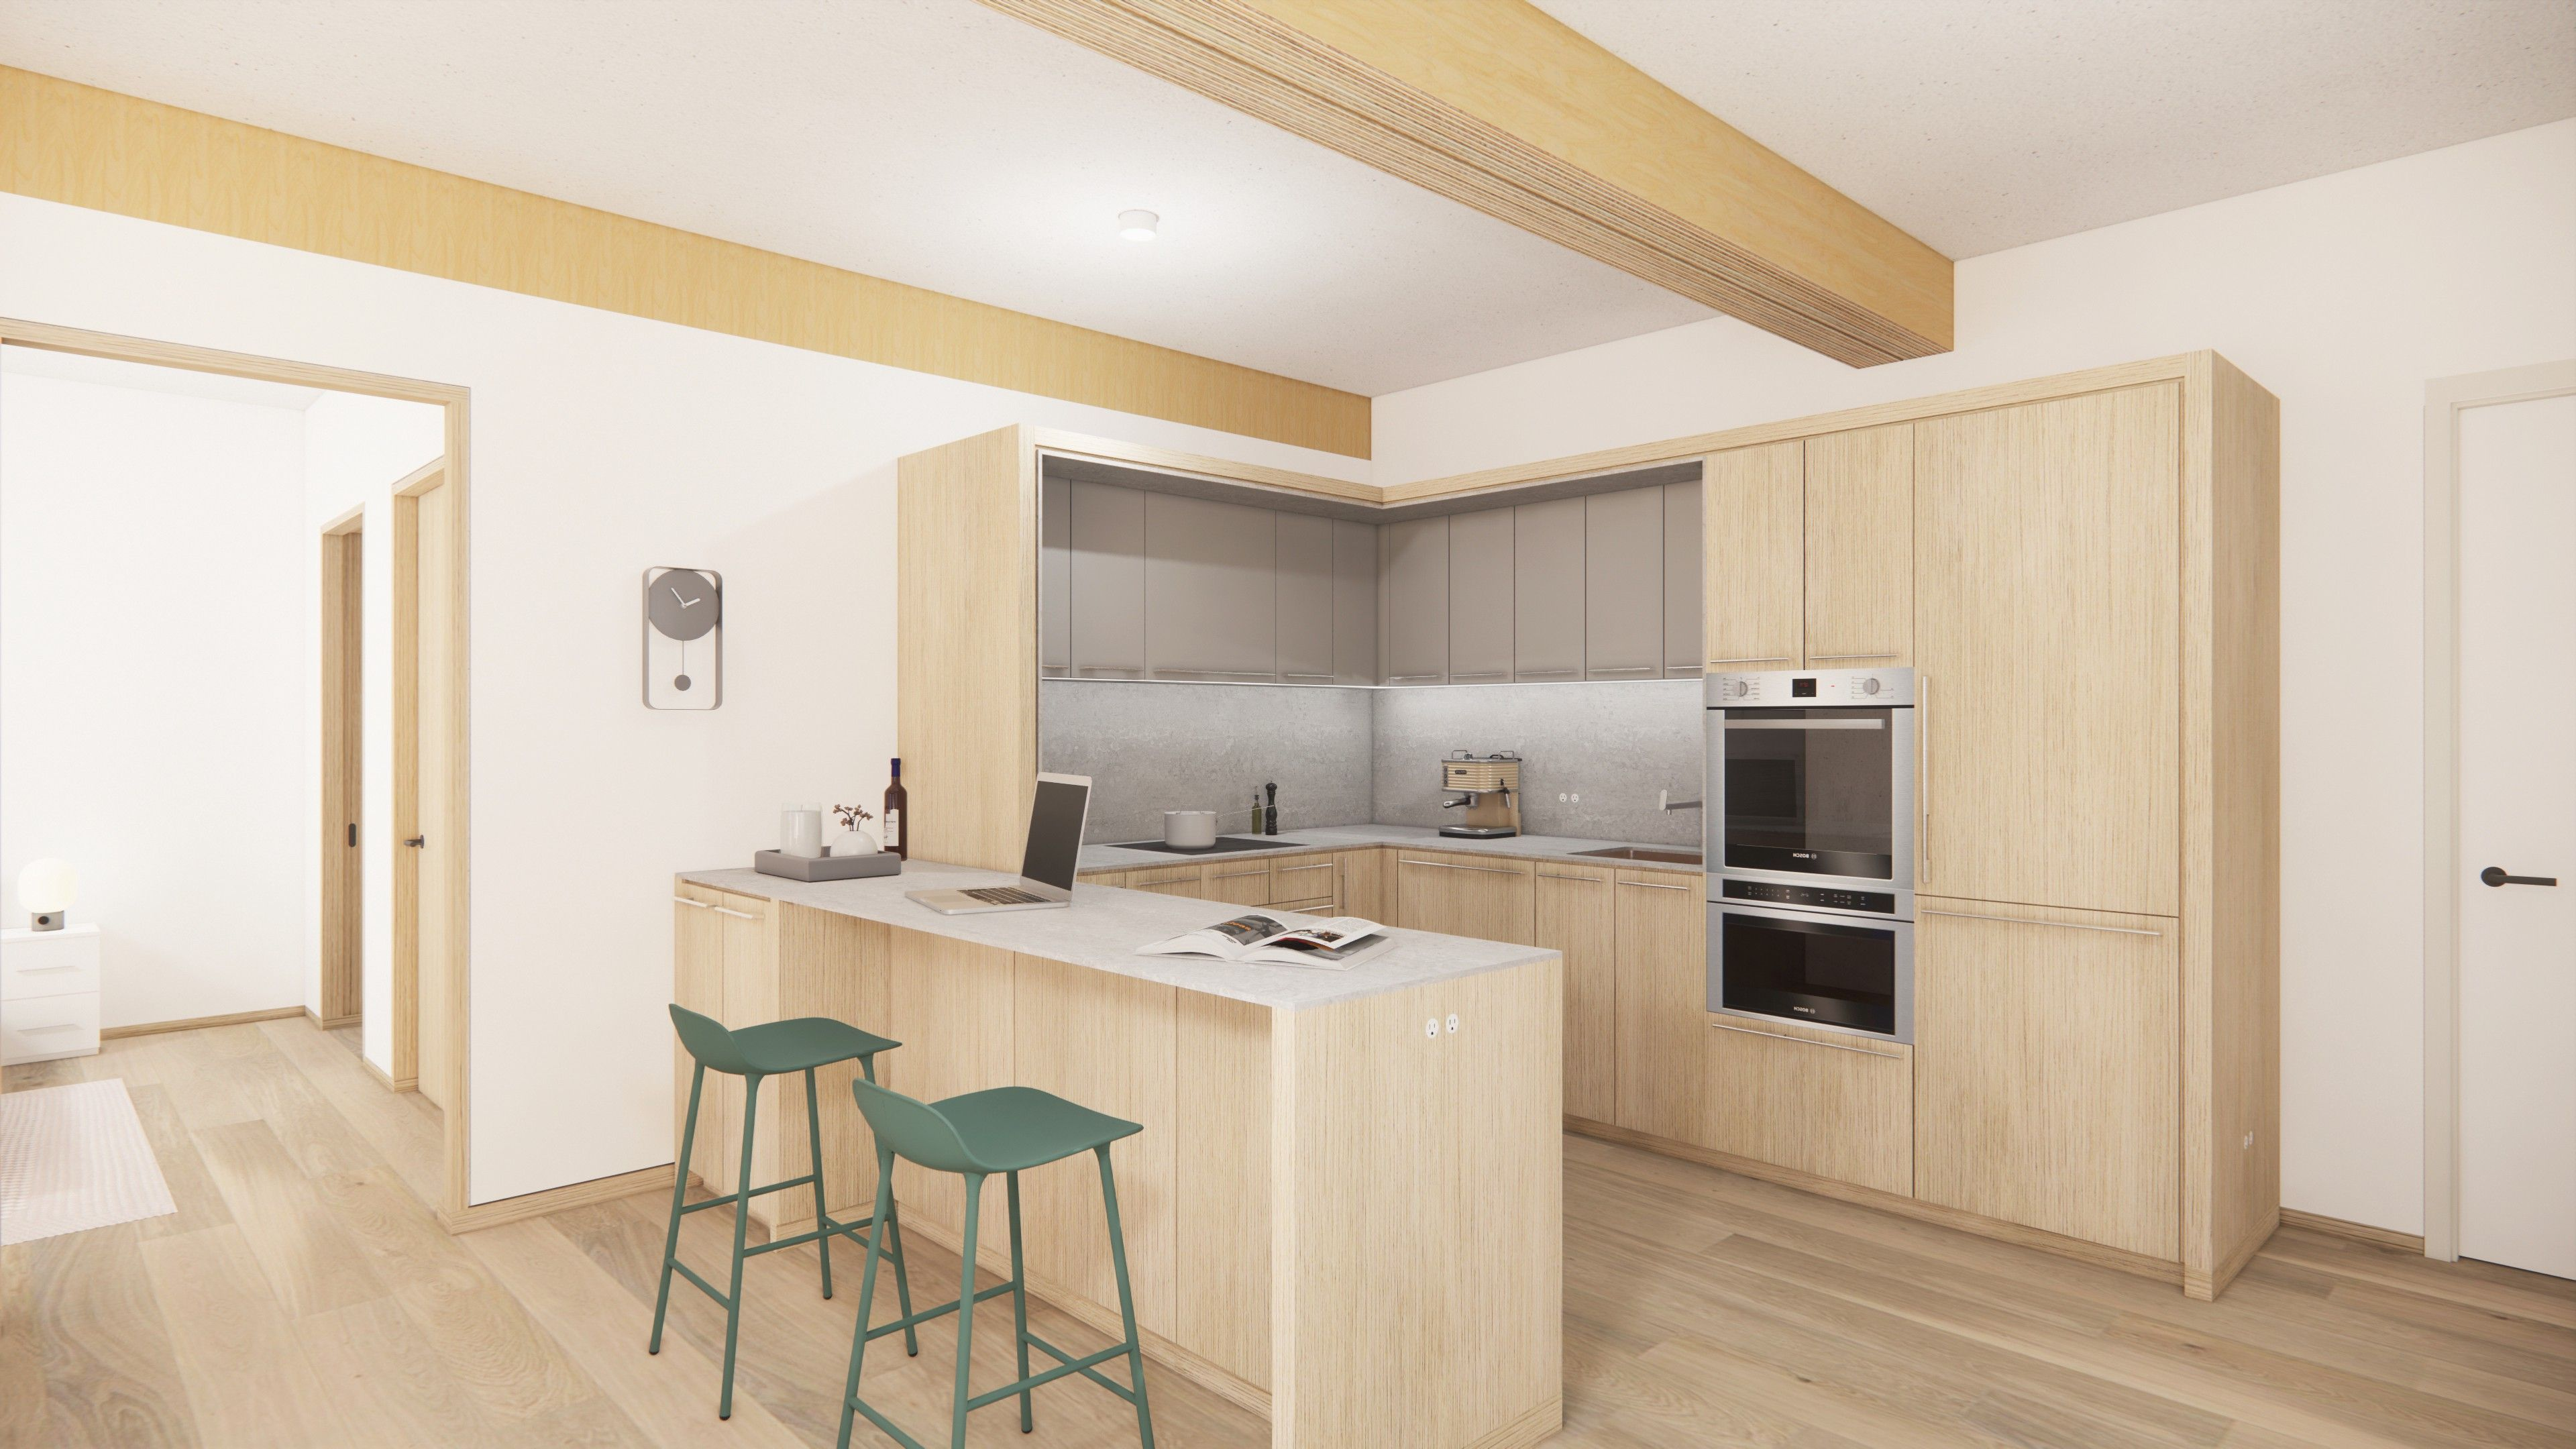 A rendering of a PMX 15 kitchen design